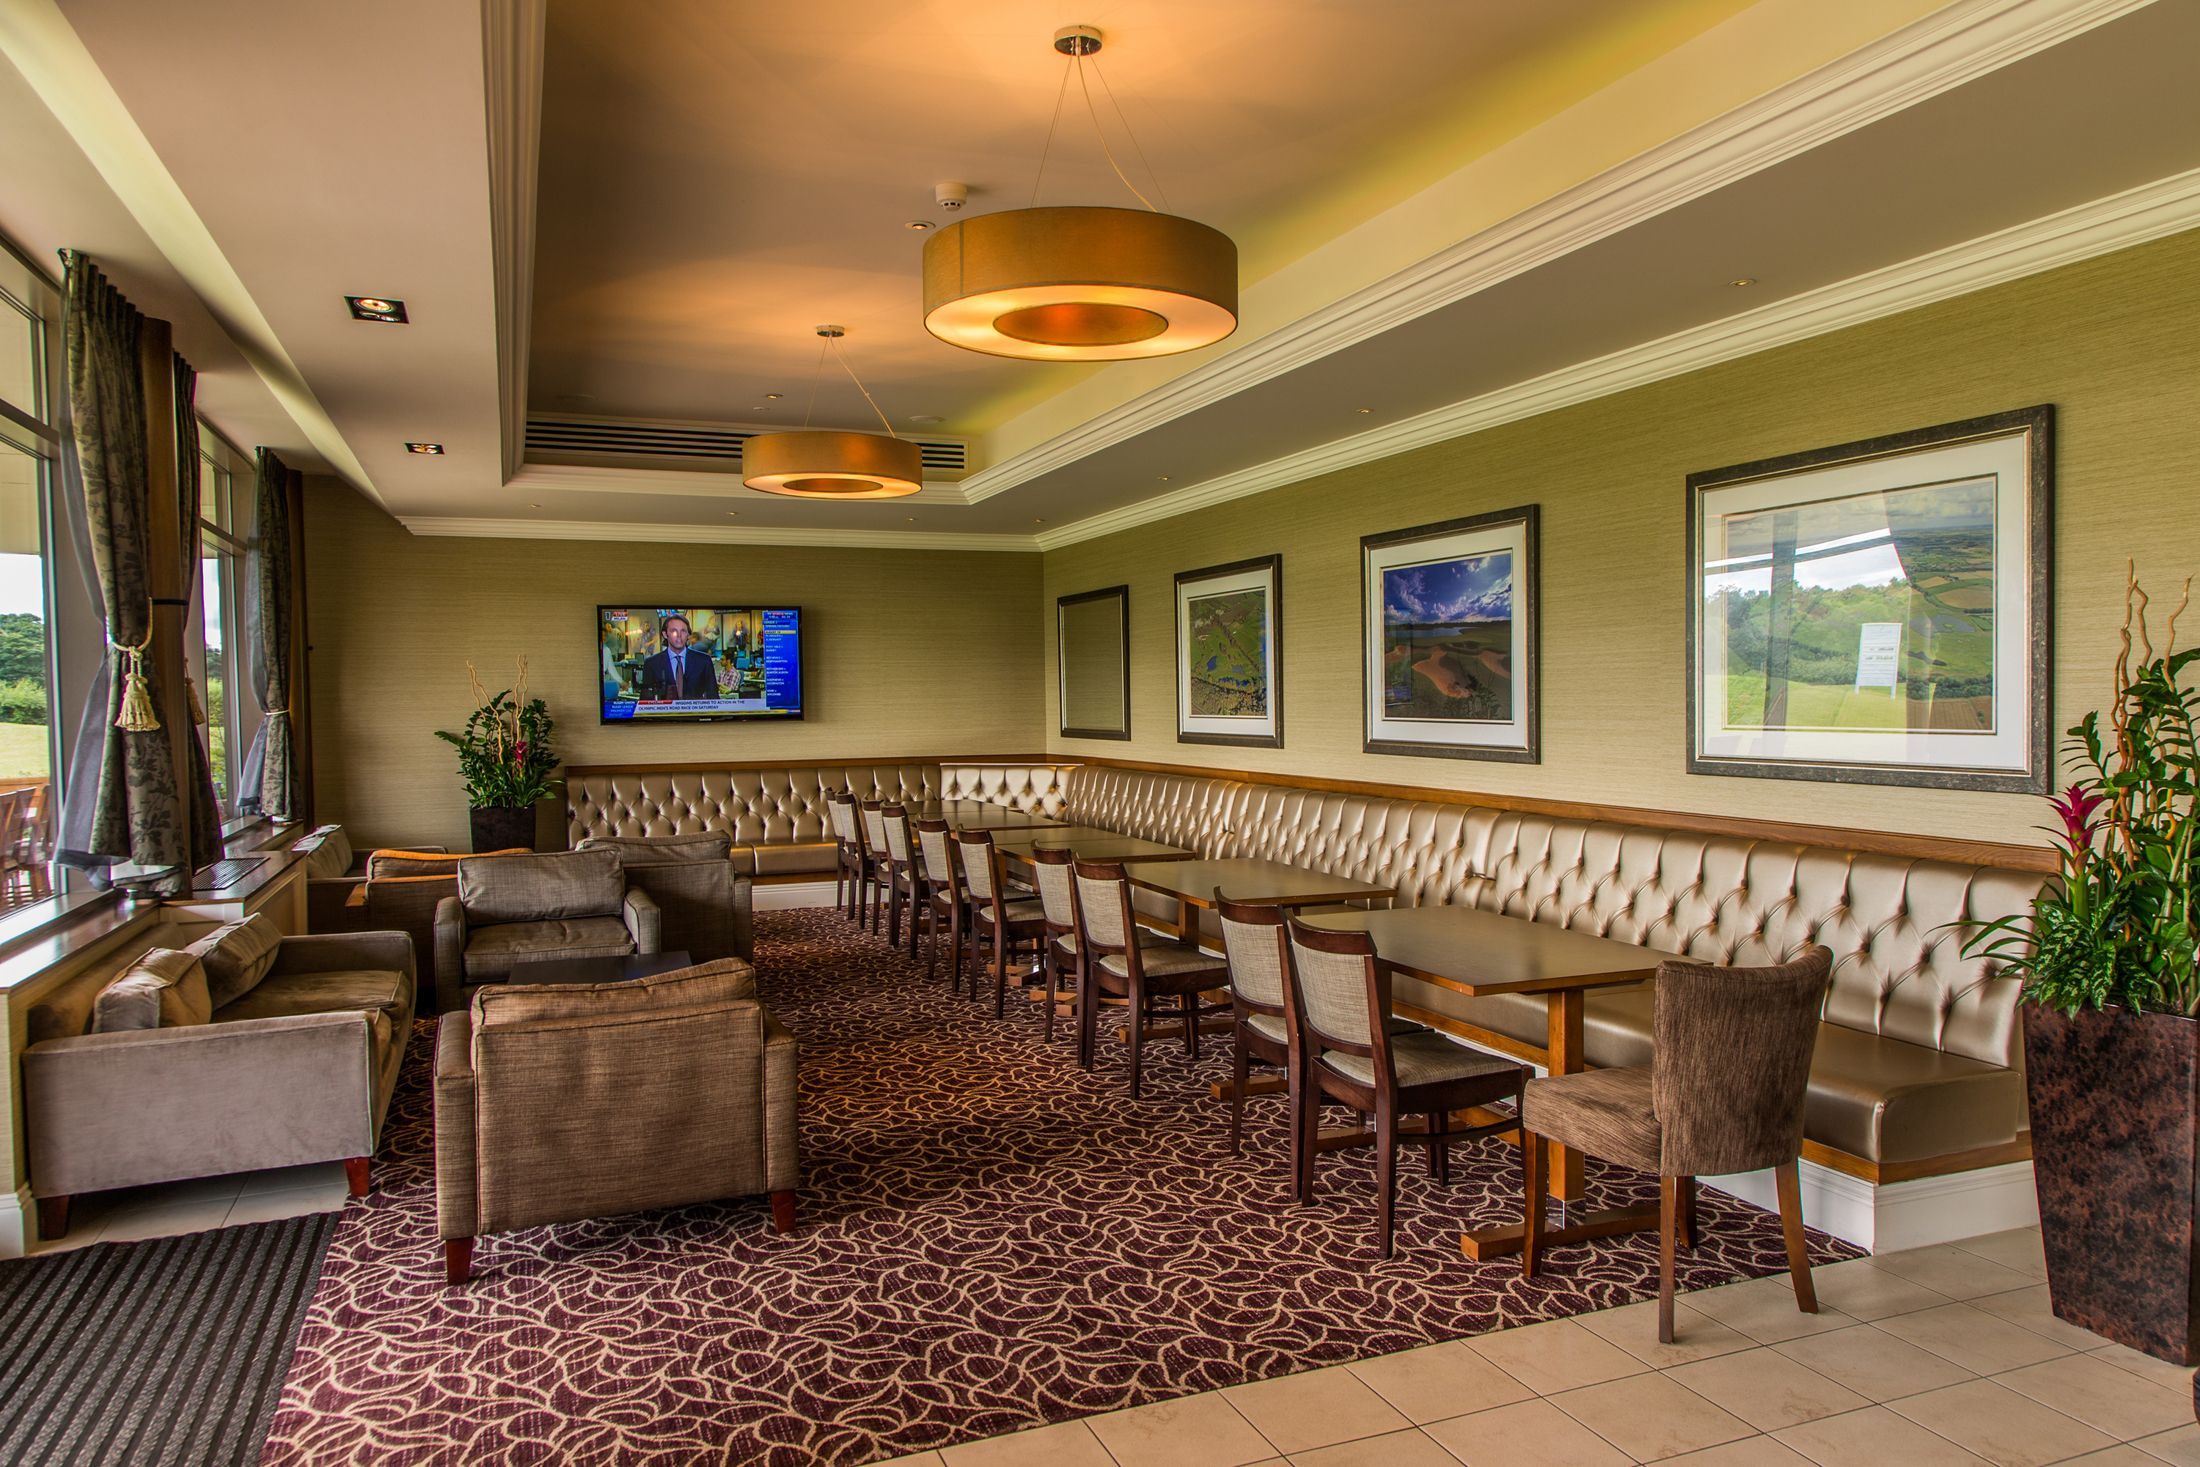 The Spike Bar located in The Clubhouse